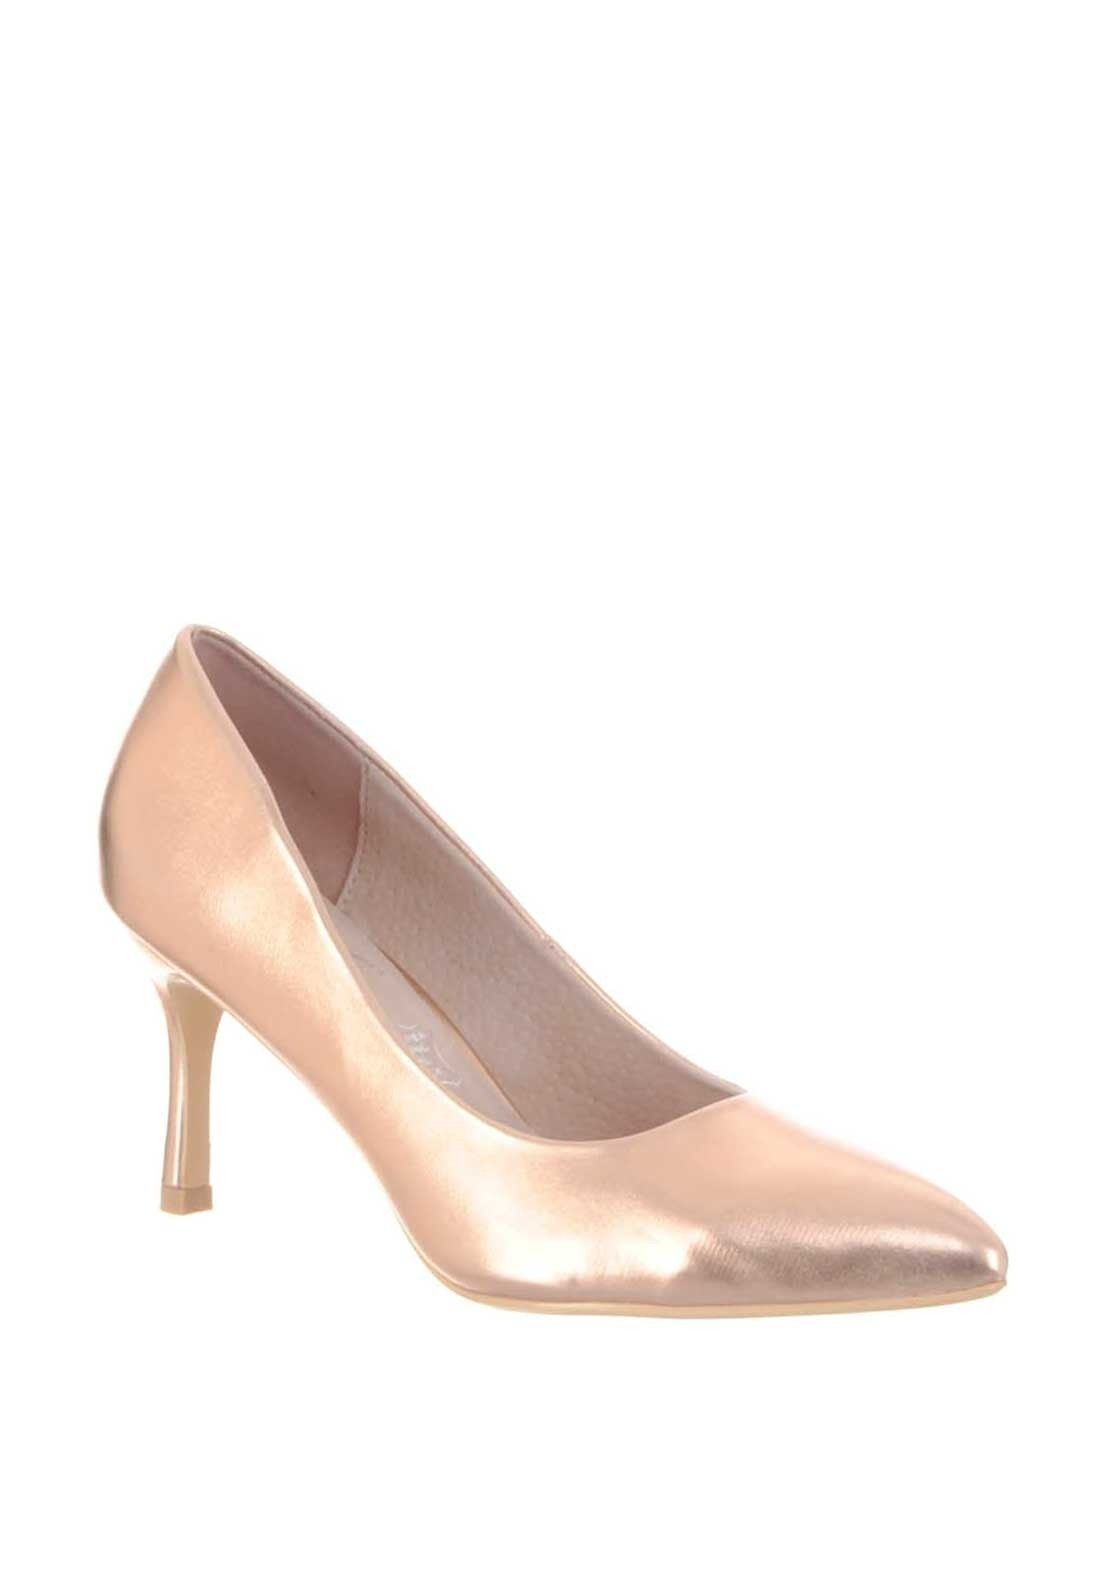 Lunar Metallic Pointed Toe Low Heeled Shoes Rose Gold Rose Gold Shoes Heels Rose Gold Shoes Gold Shoes Heels